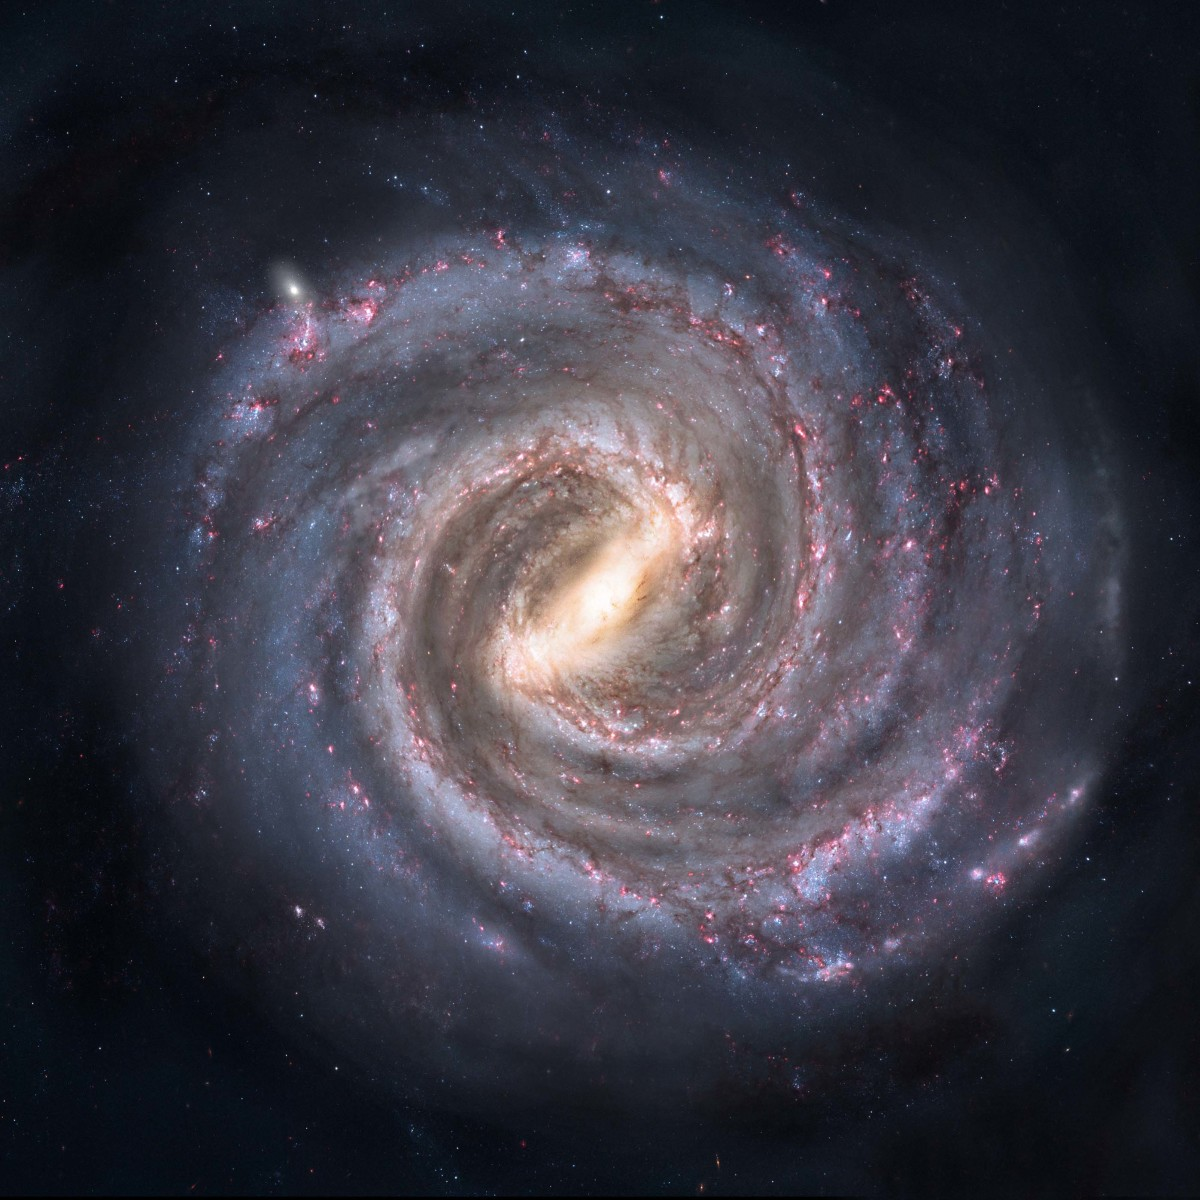 This is what our galaxy may look like if viewed from above the galactic centre